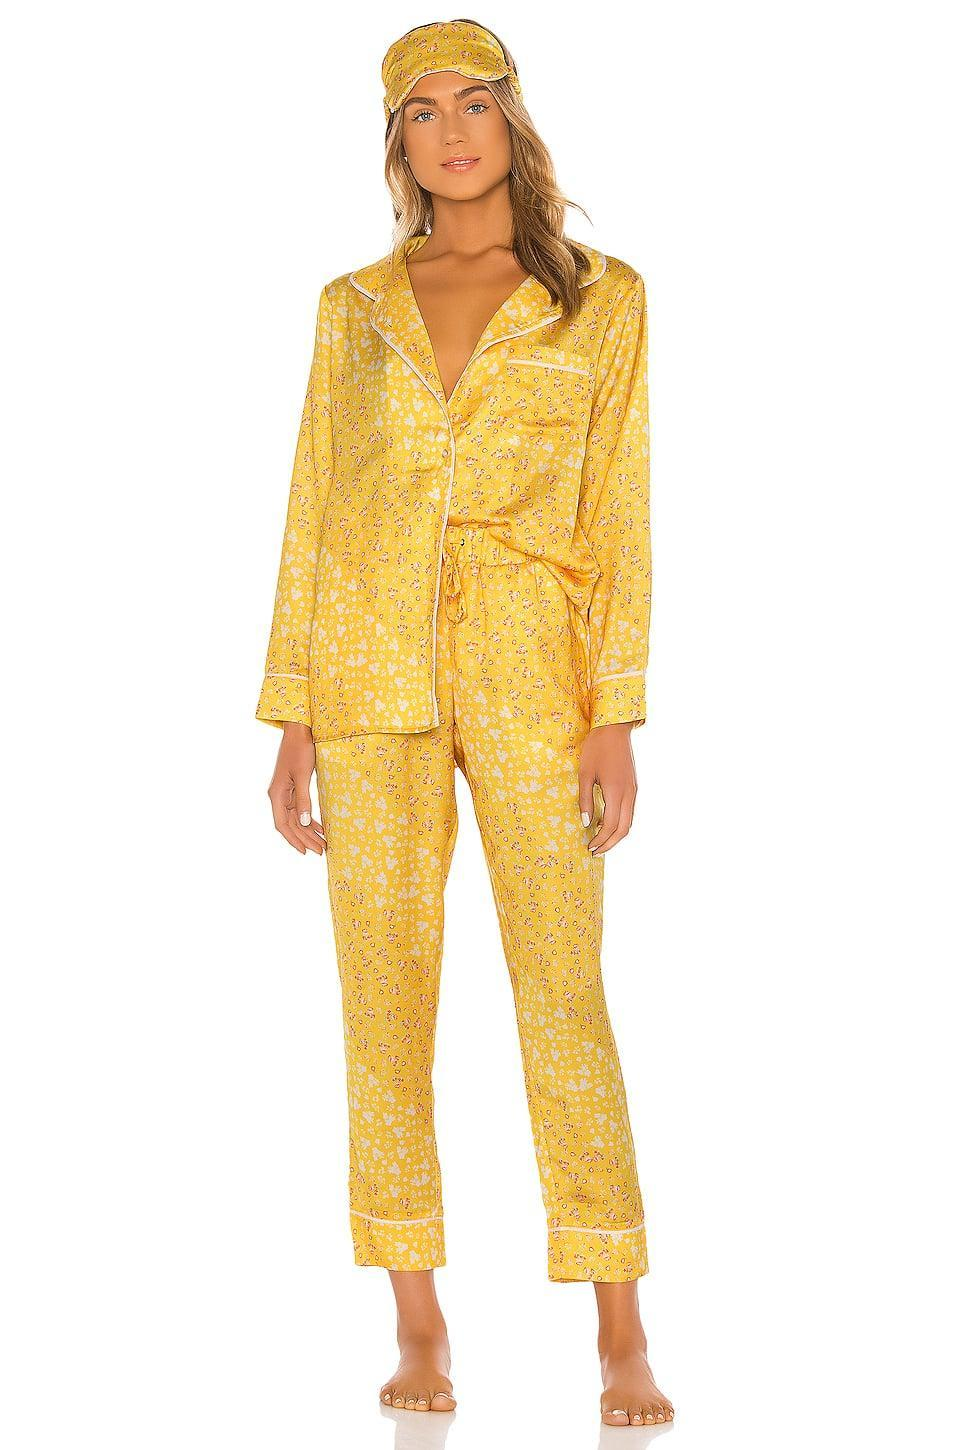 <p>This sunny <span>Plush Floral PJ &amp; Eye Mask Set</span> ($158) is so sweet. Paired with the matching eye mask, it practically ensures a good night's sleep!</p>